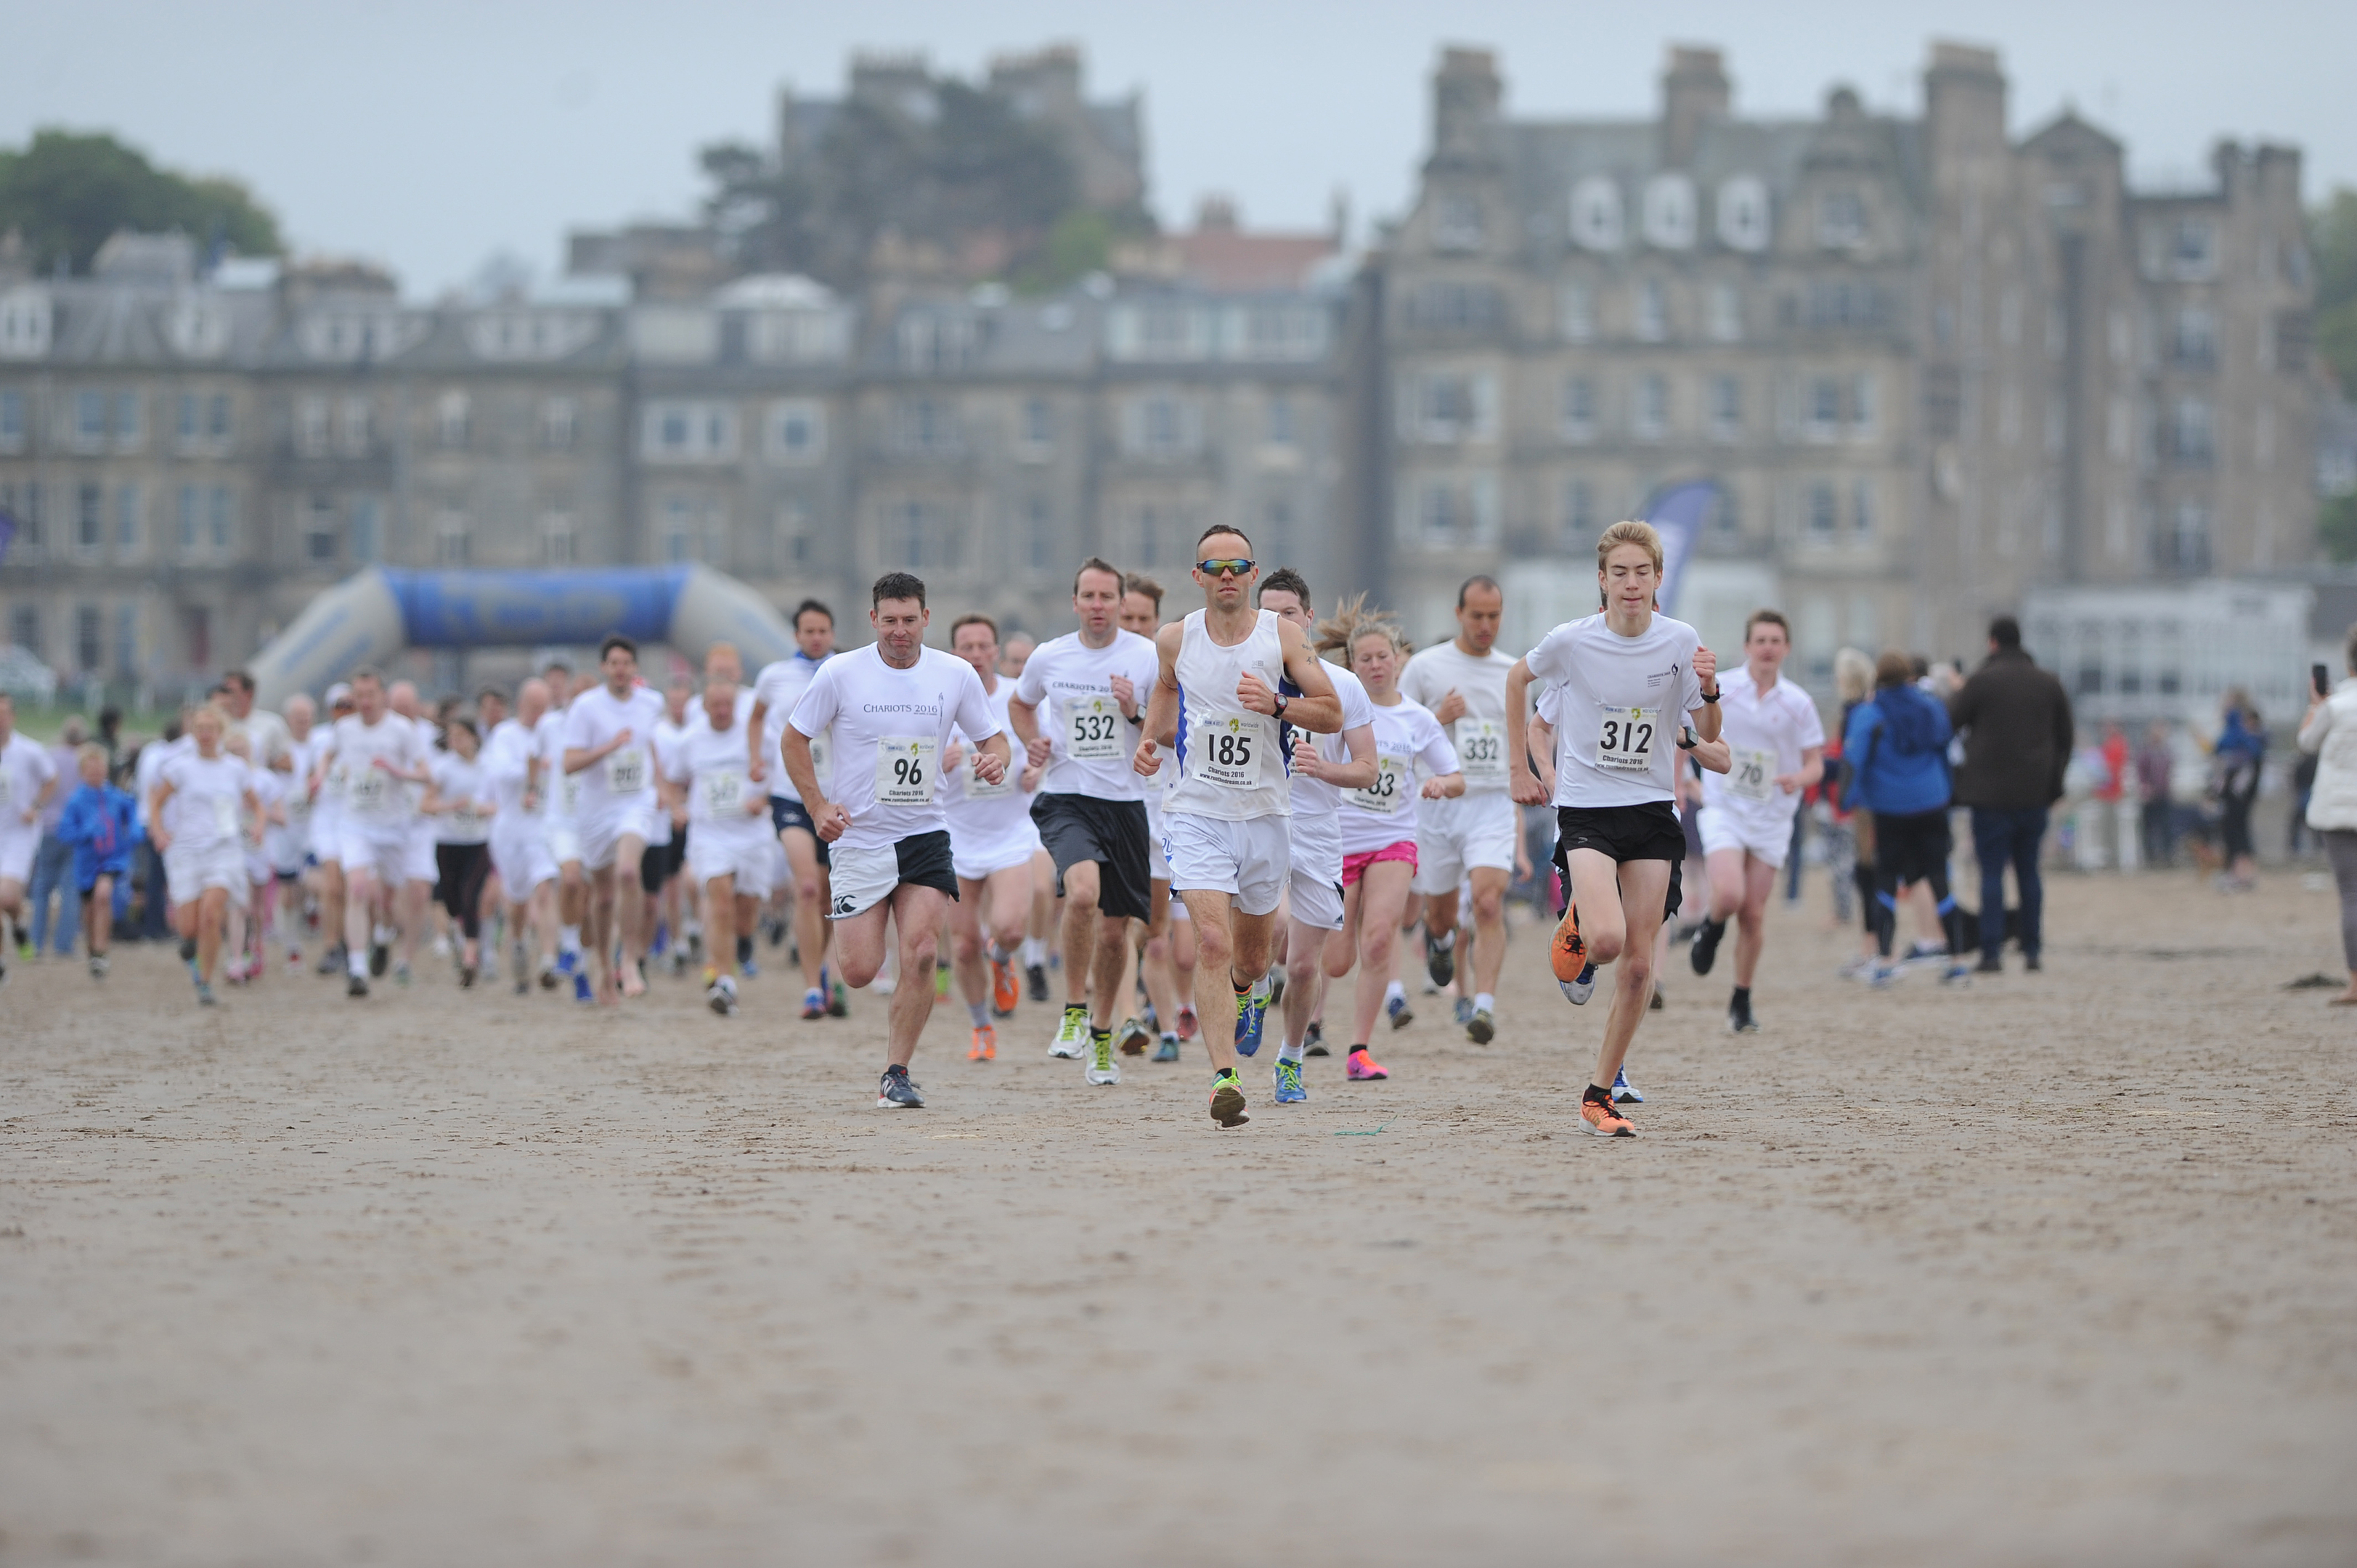 The annual Chariots of Fire charity running event on the West Sands in St Andrews.